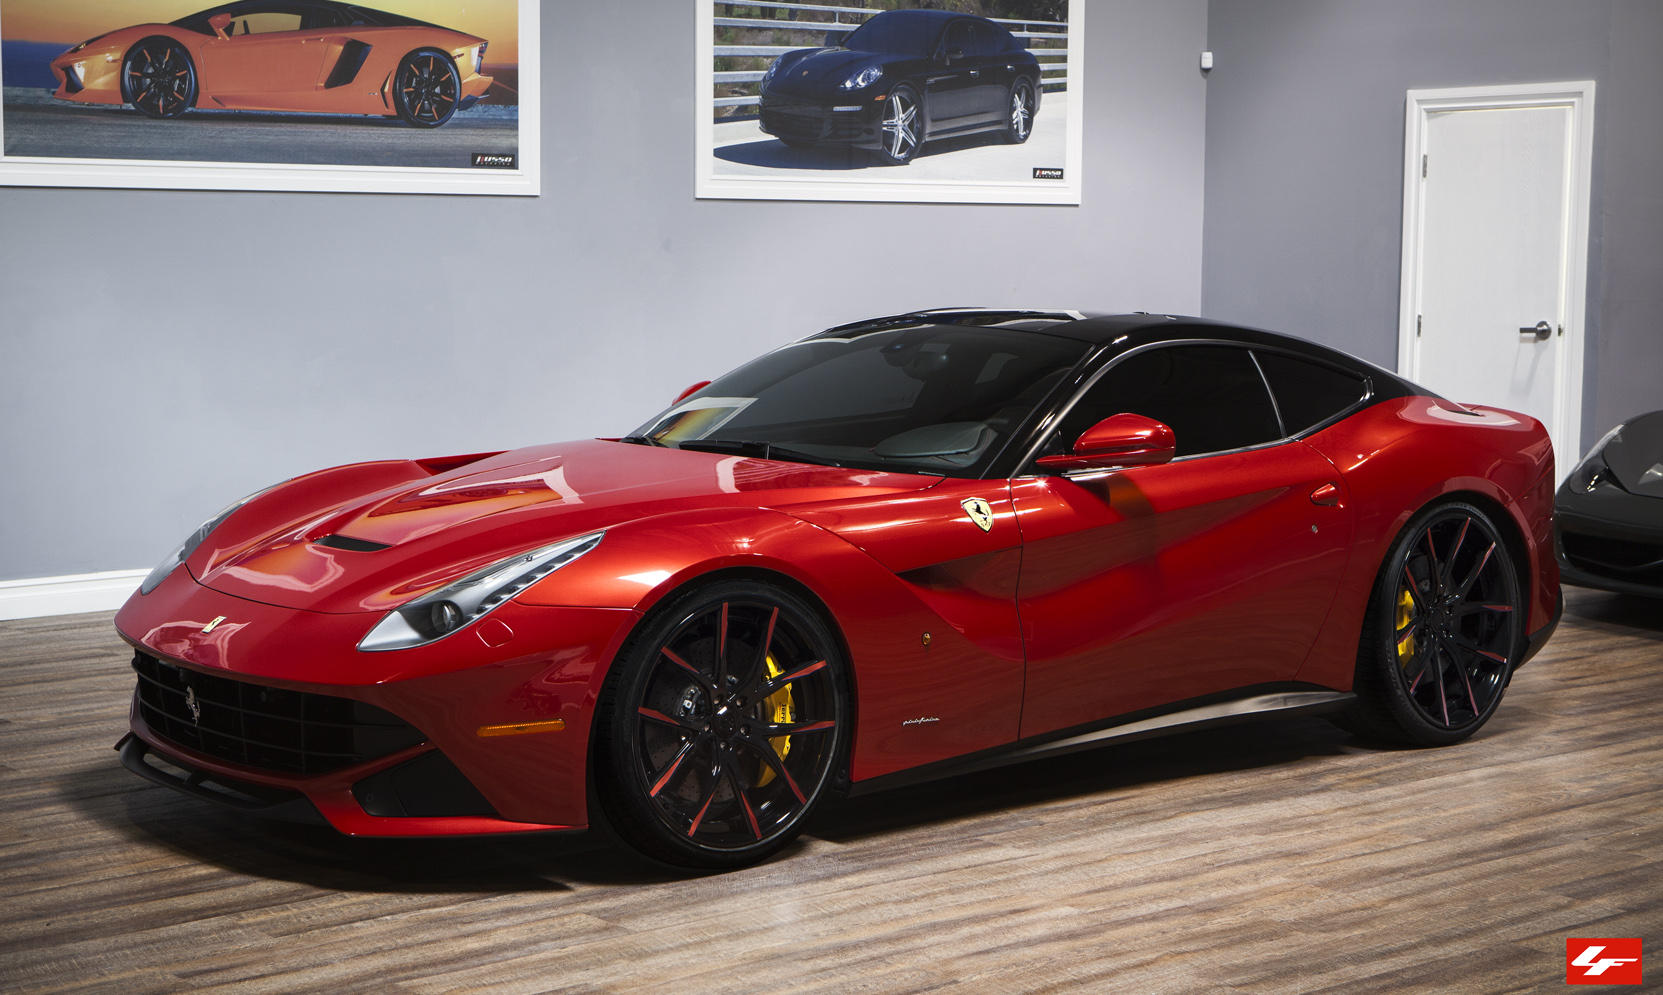 Custom LZ-102 on Ferrari F12